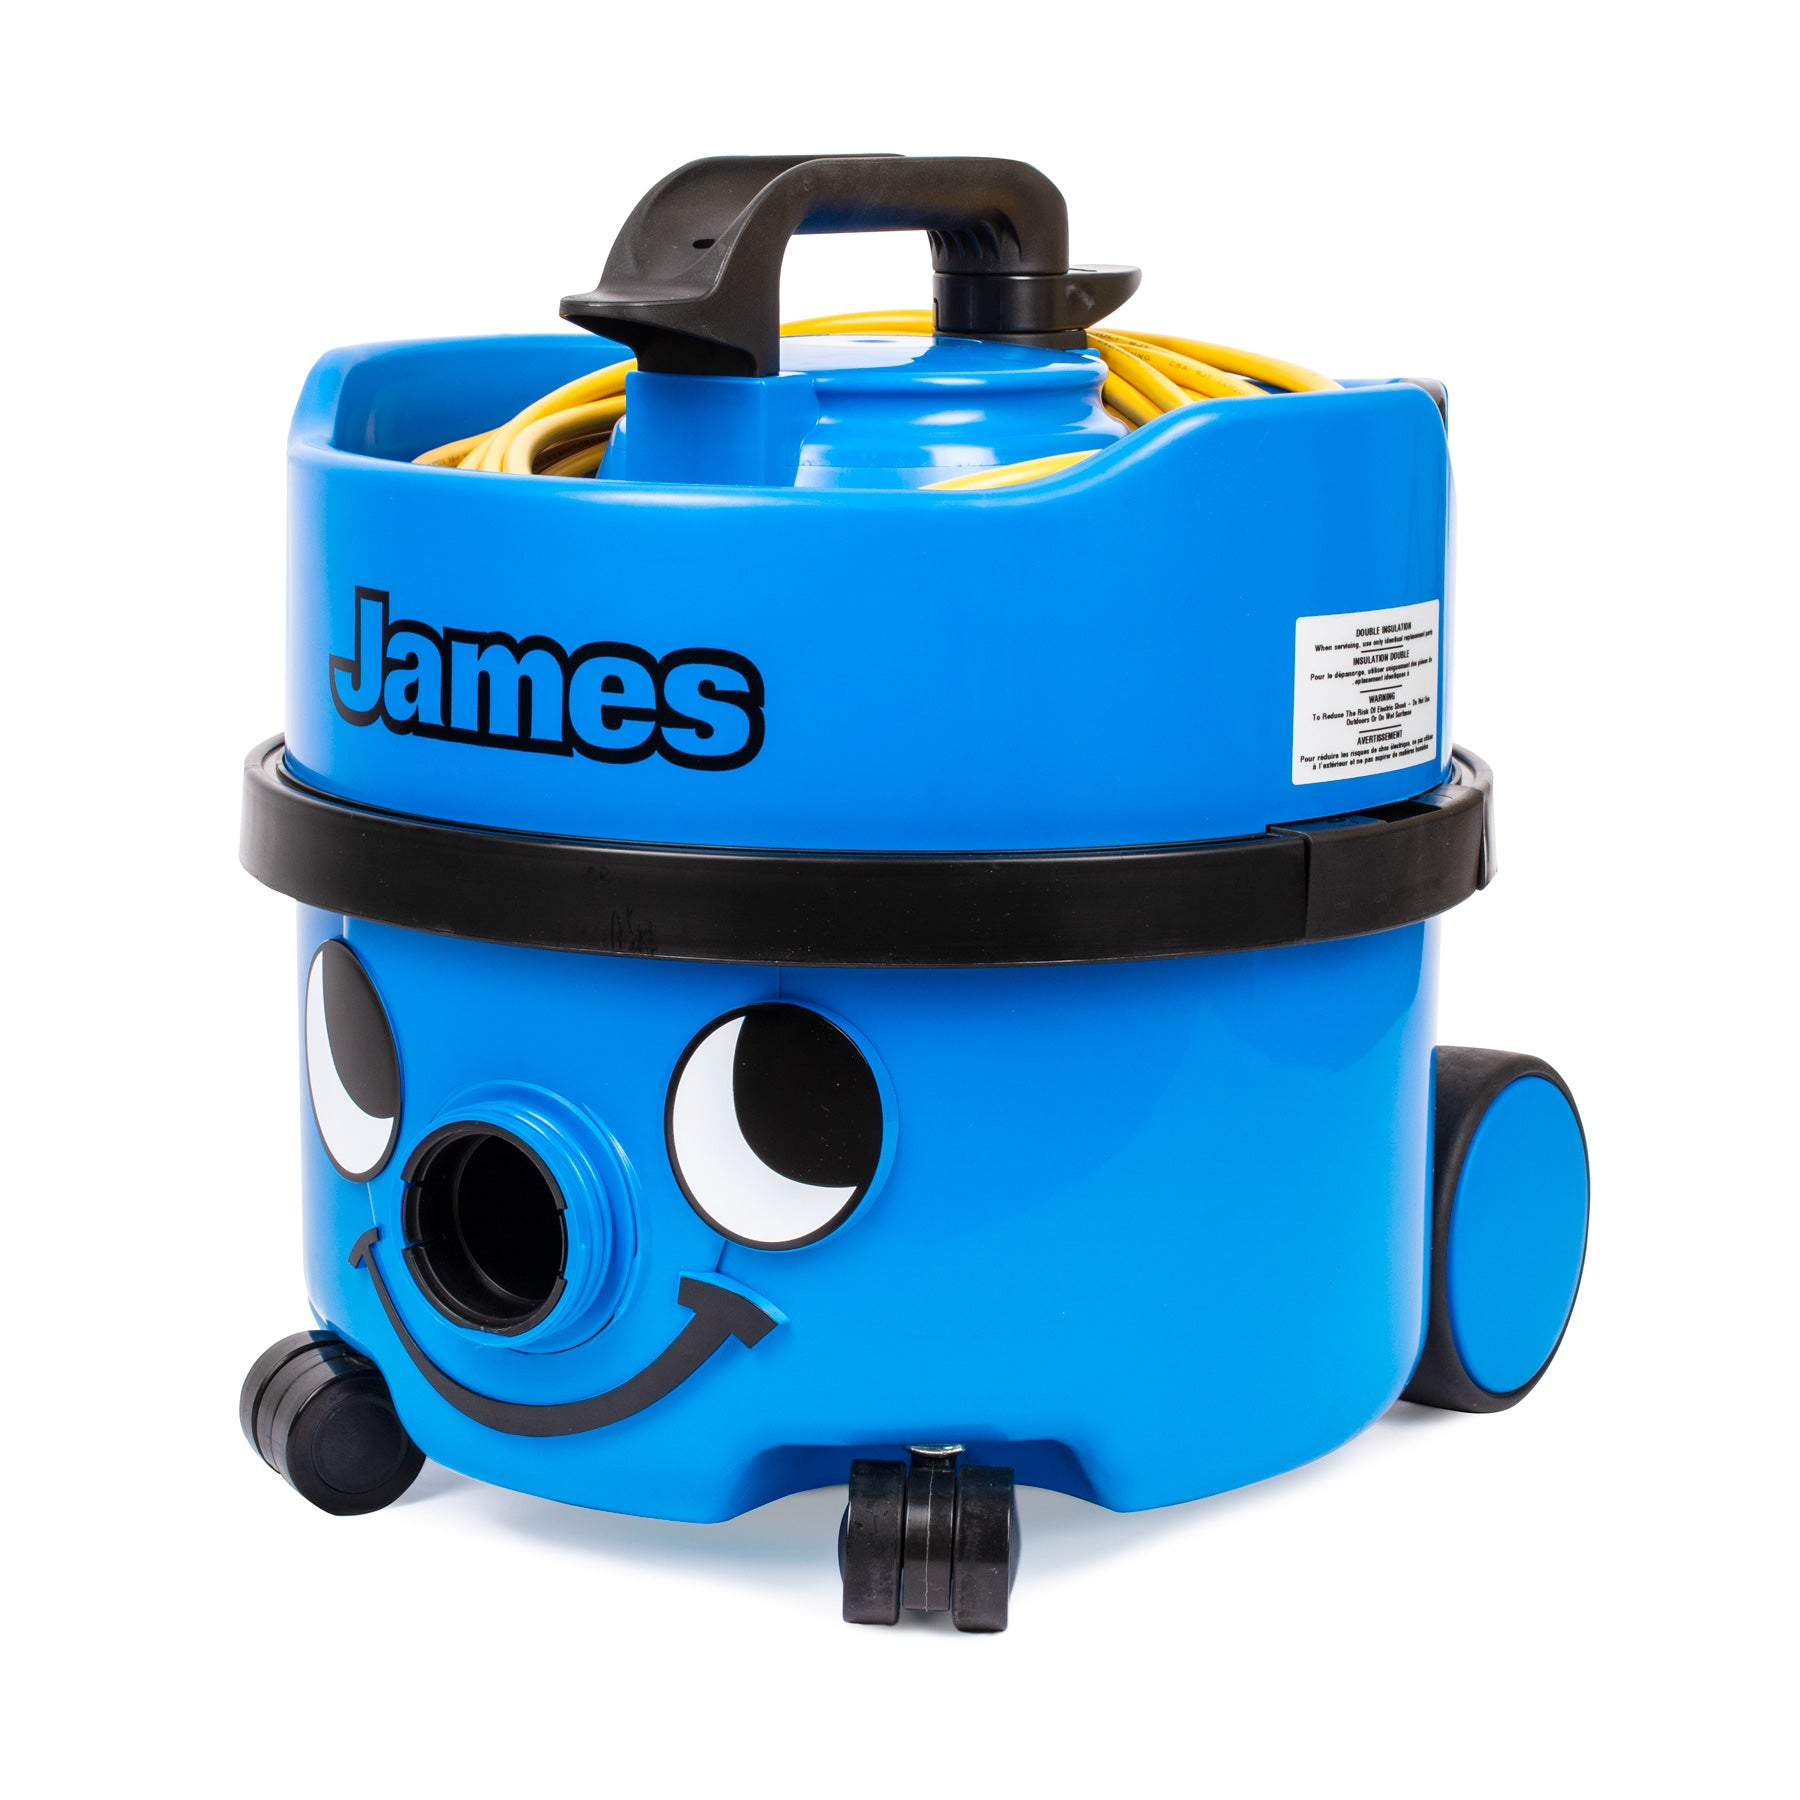 NC-PSP180 NUMATIC James Canister Vacuum with 90 CFM Sky Blue Single Speed